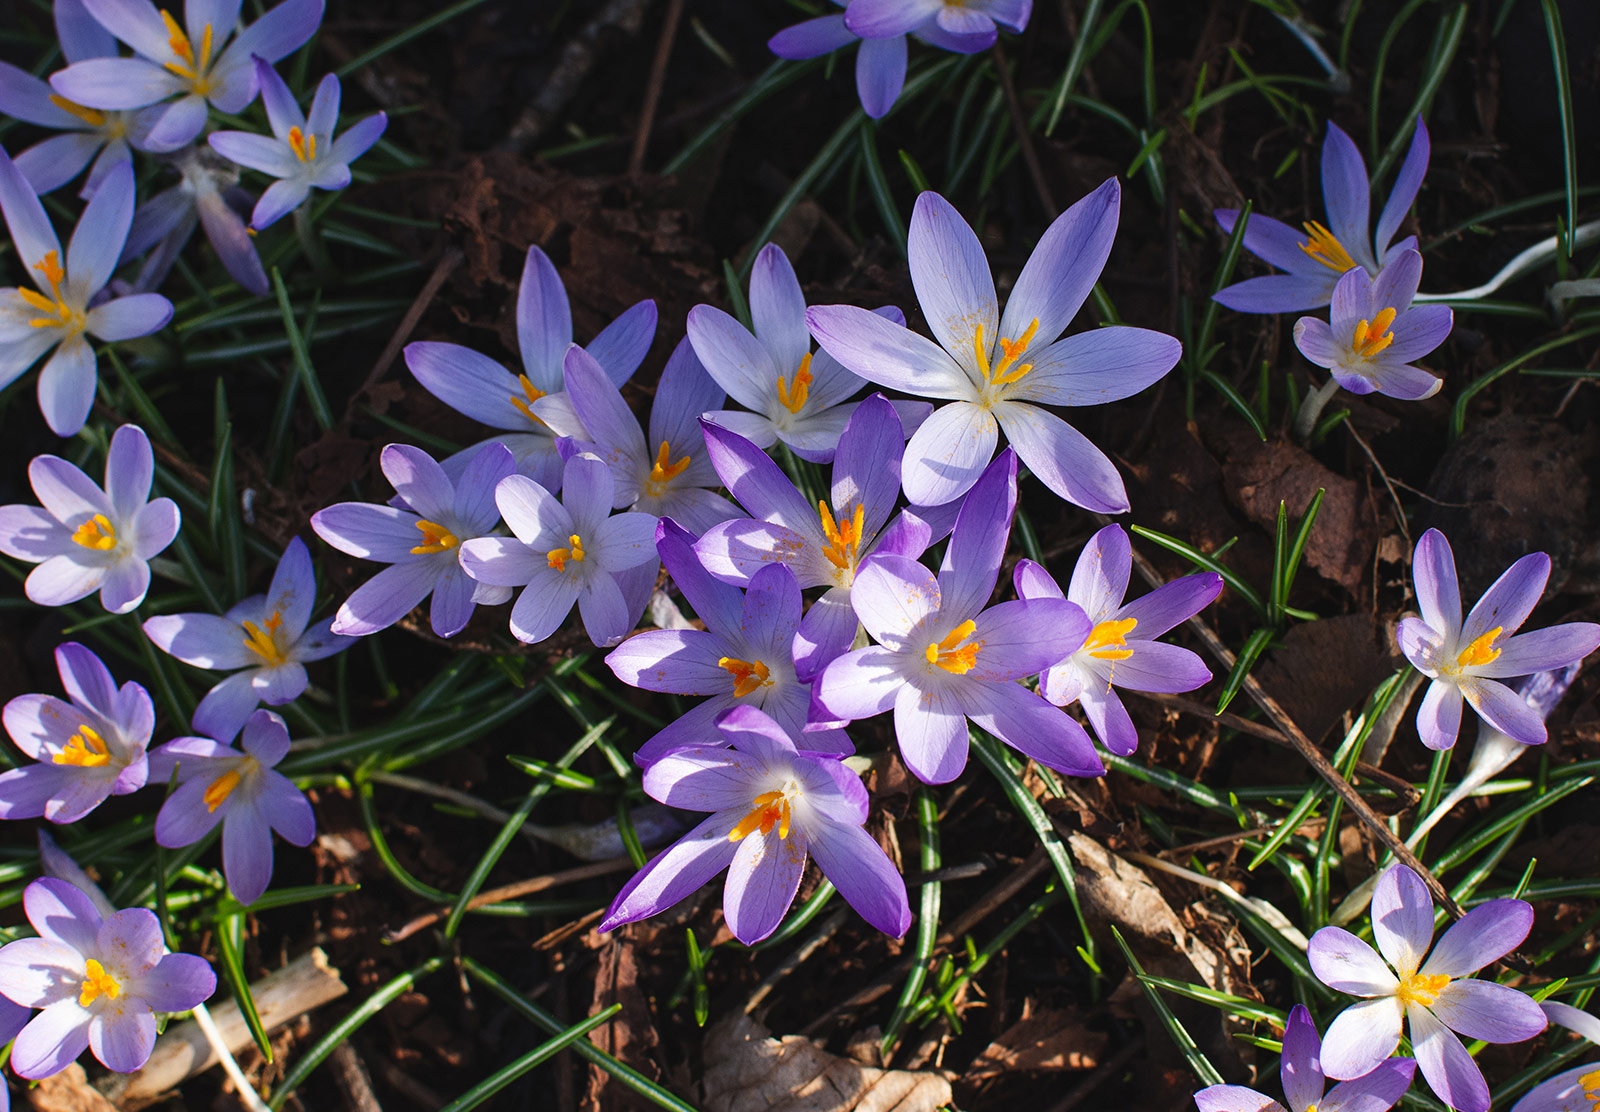 Cluster of crocus